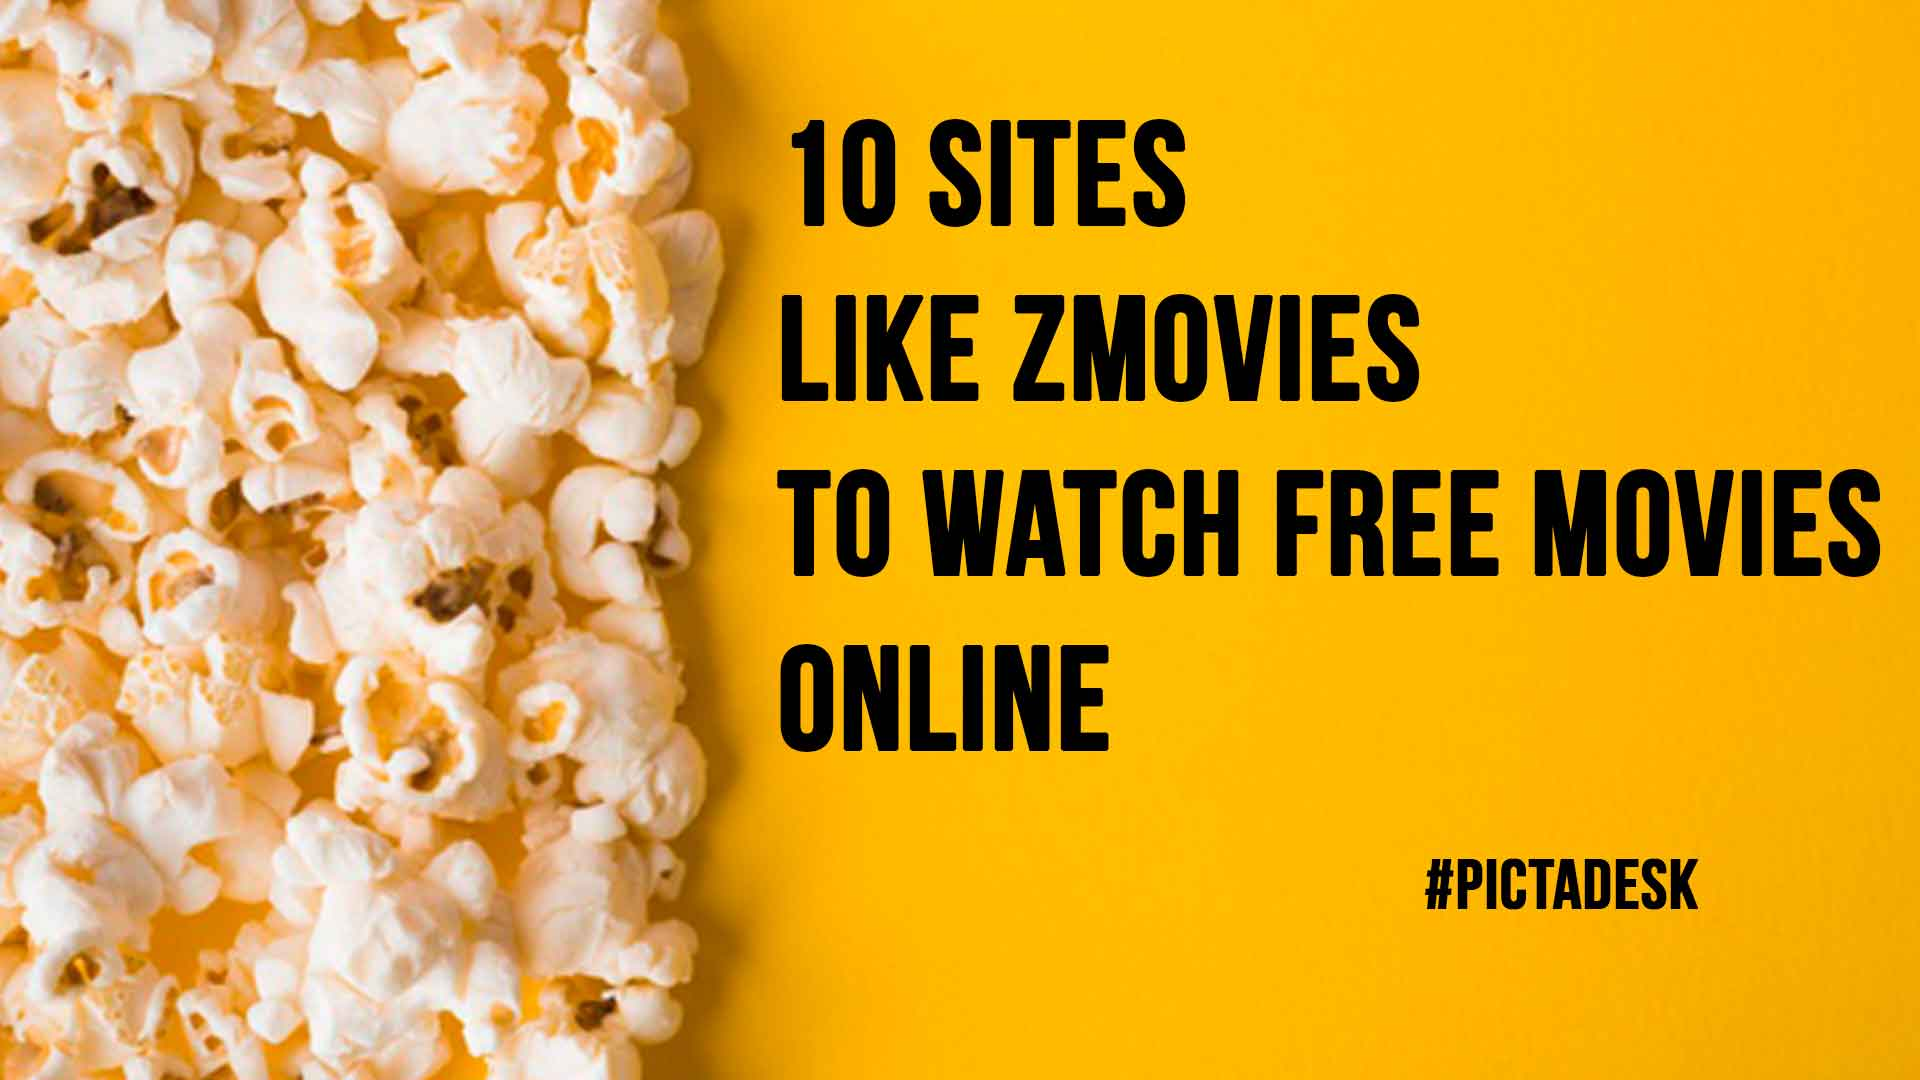 10 Sites Like Zmovies to Watch Free Movies Online 1